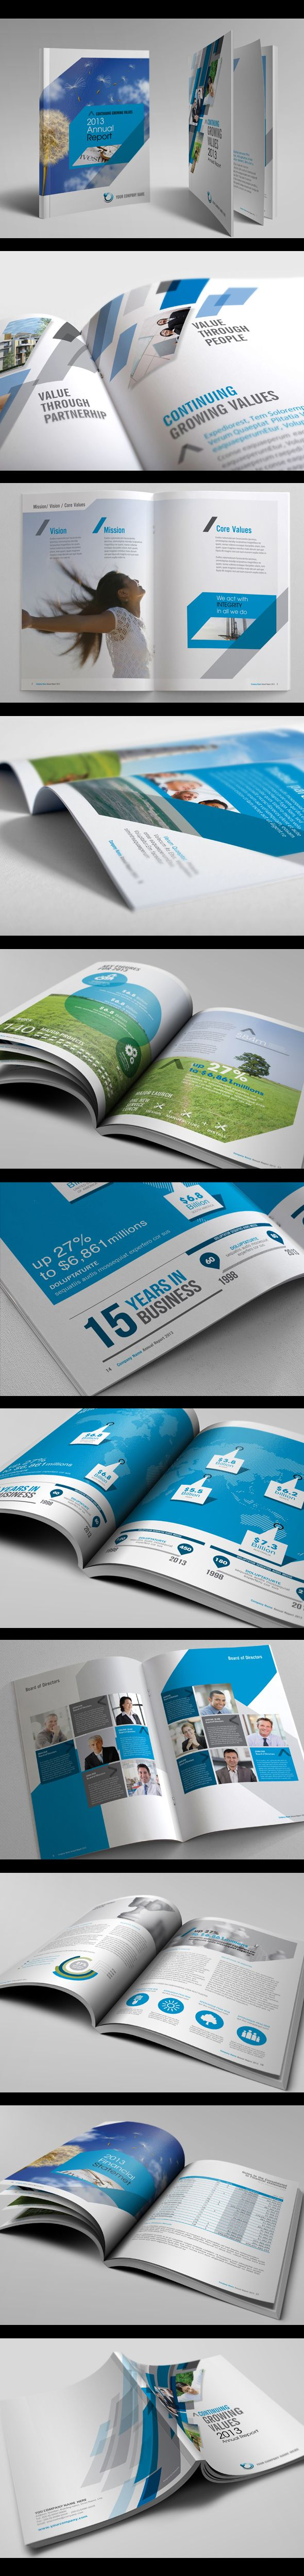 Annual Report Series 1 by Jet Paul, via Behance